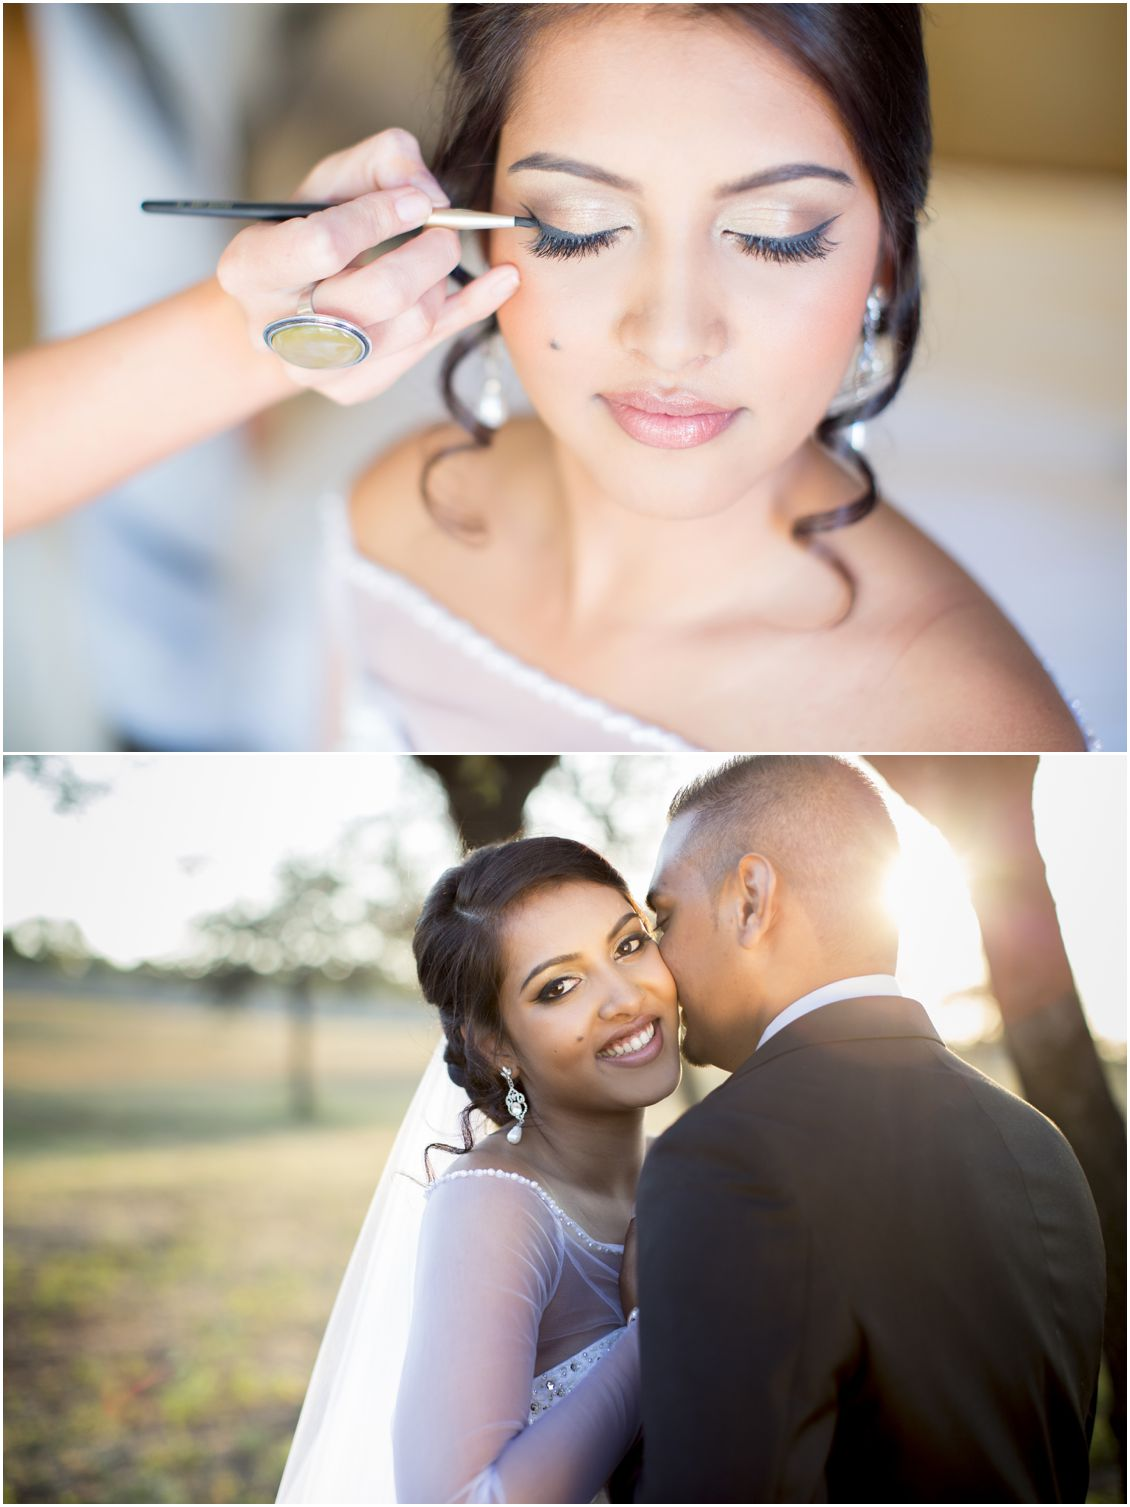 Expert Wedding Makeup Tips